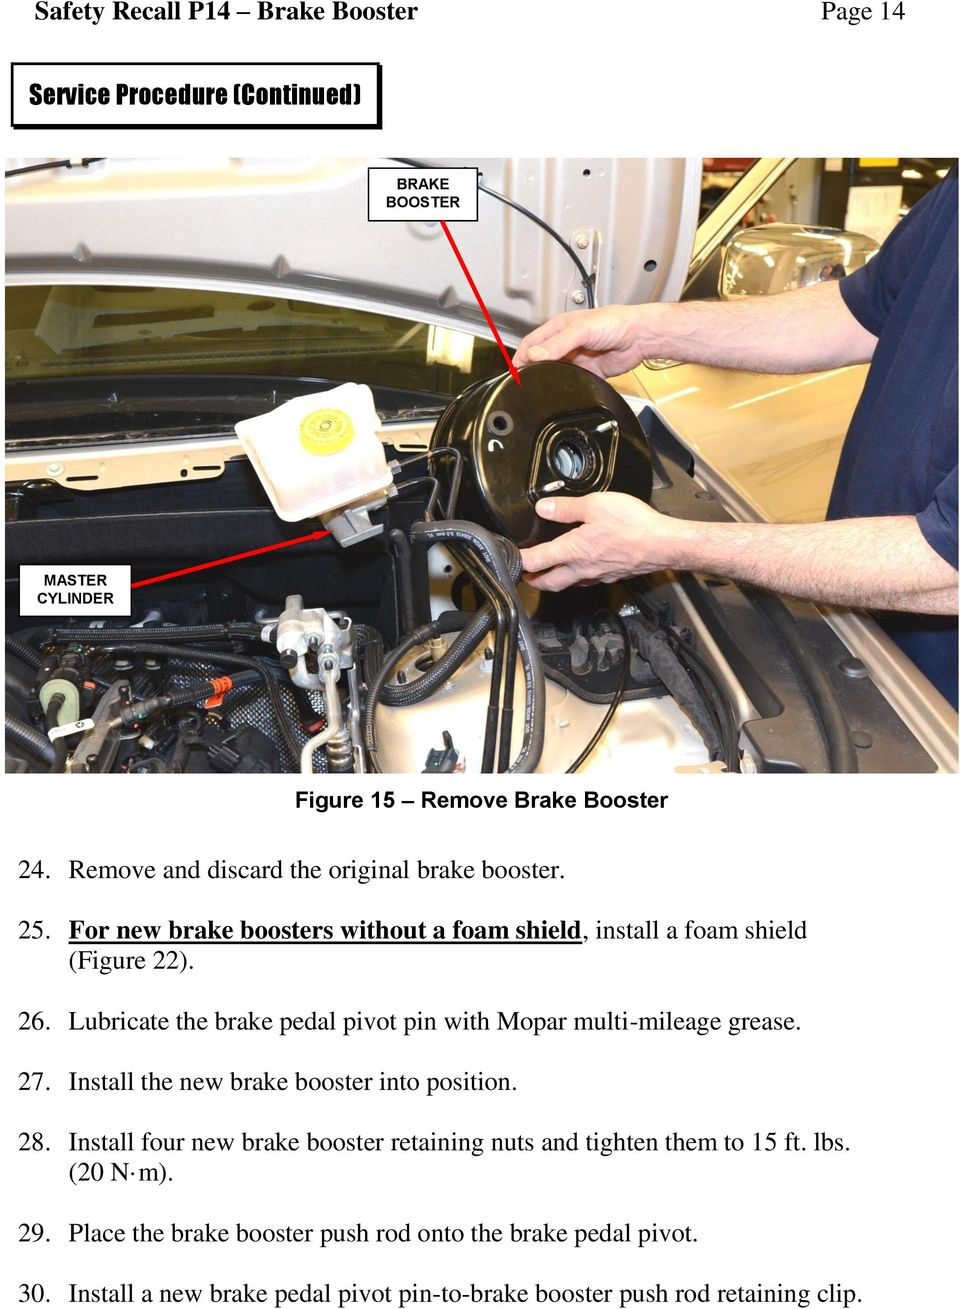 Dealer Service Instructions for: Safety Recall P14 / NHTSA 14V-154